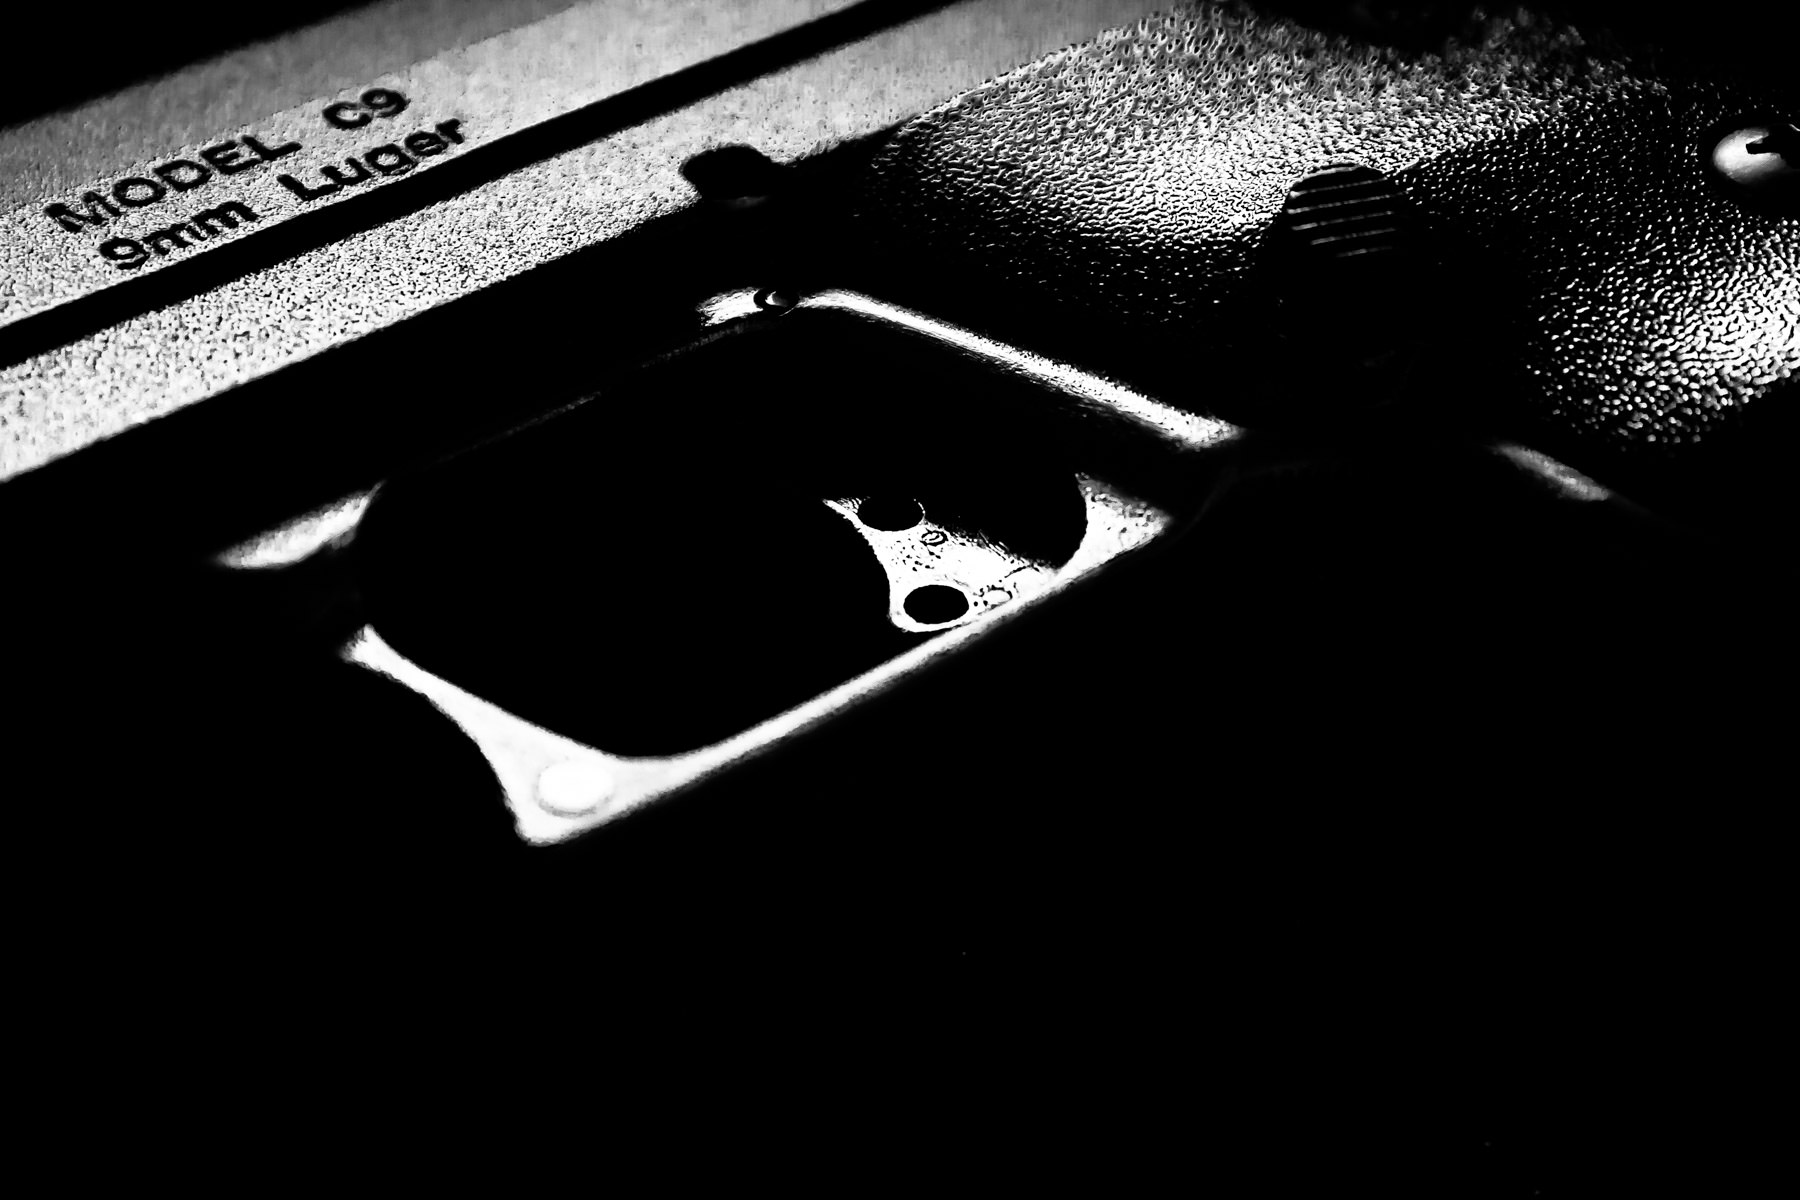 Detail of a 9mm handgun.